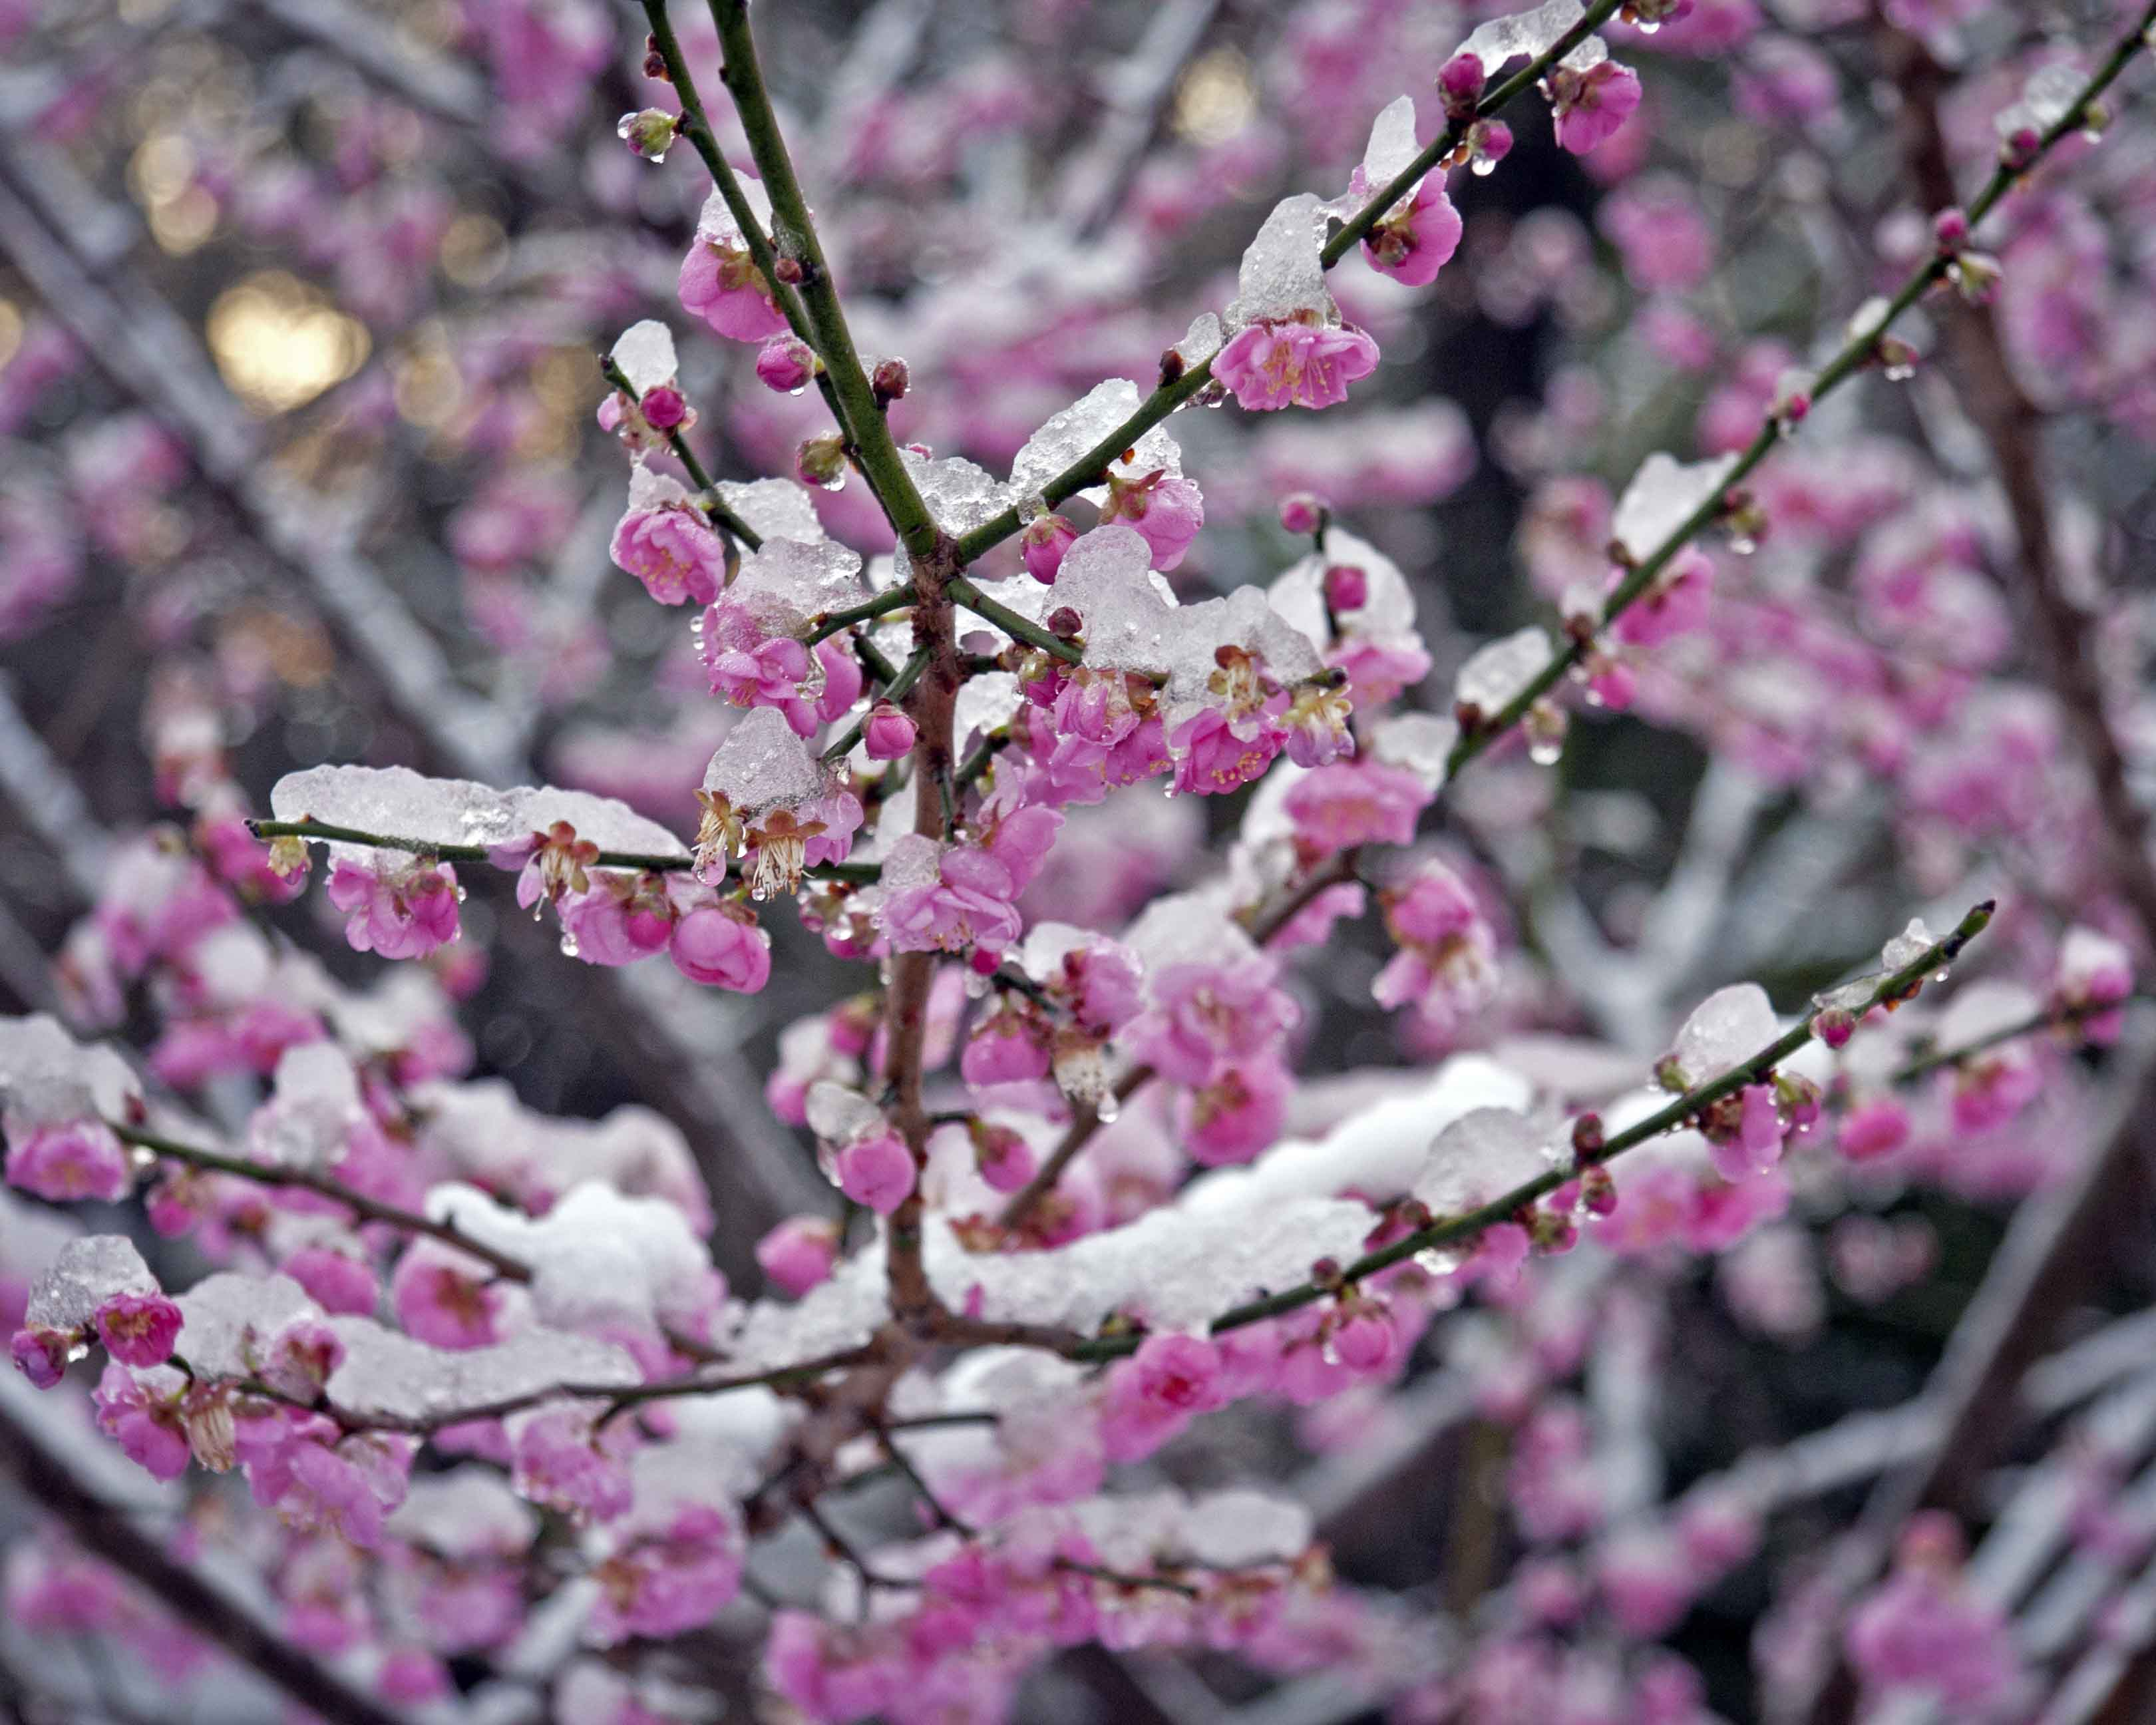 Winter makes an appearance finally piedmont gardener very pretty but flower petals arent fans of direct ice contact mightylinksfo